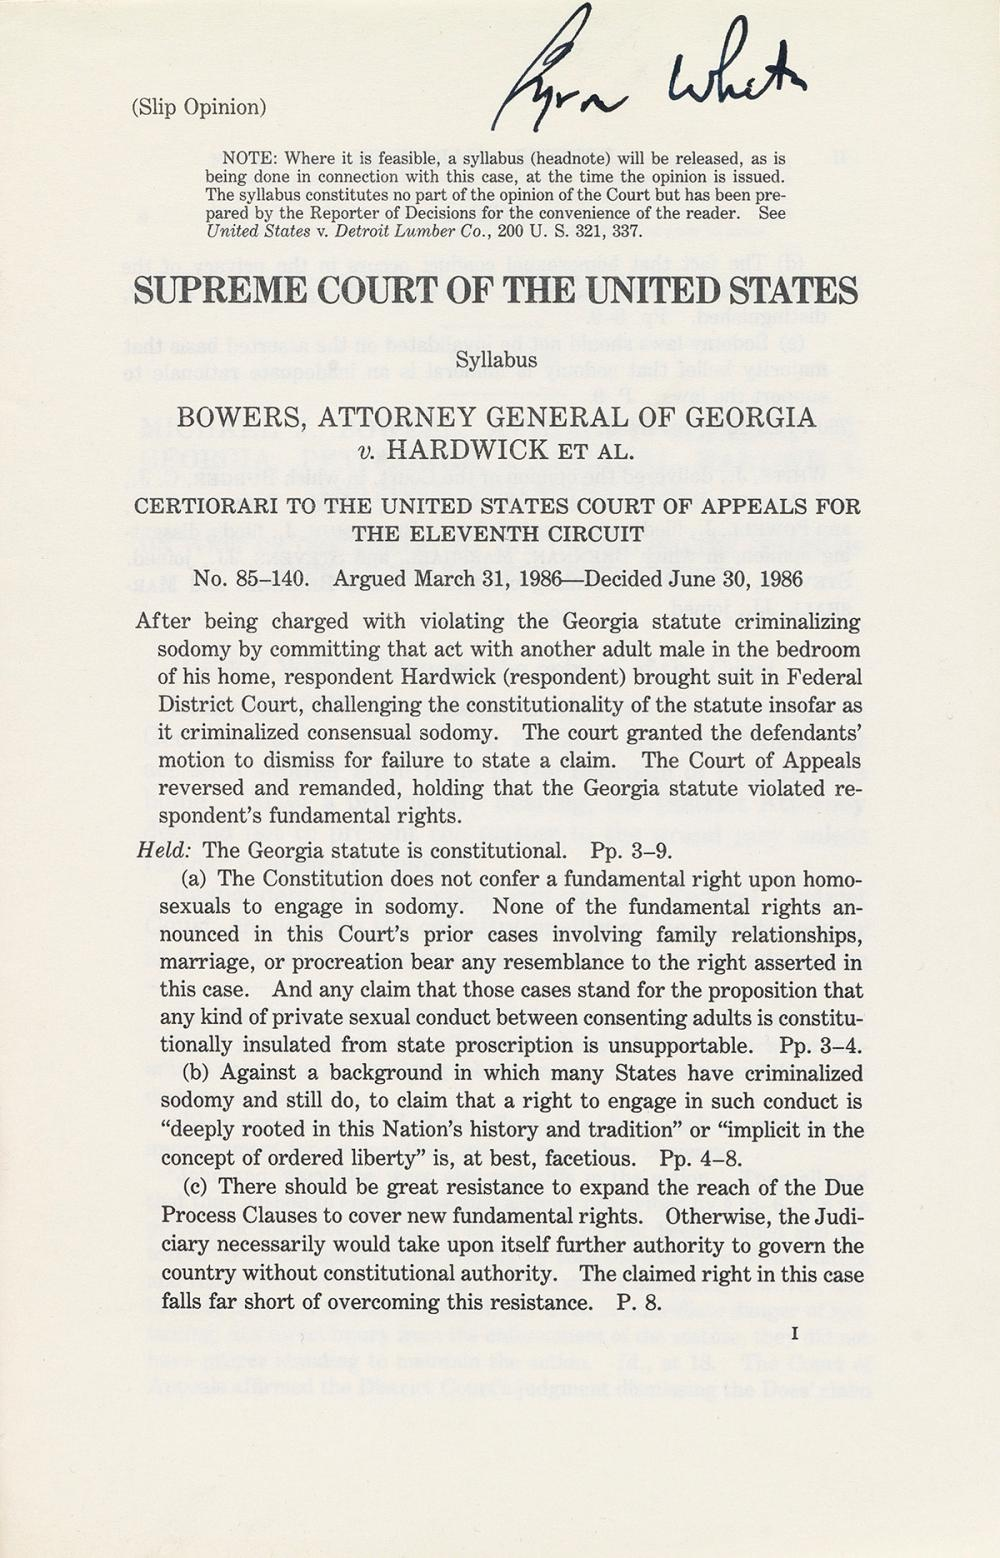 SUPREME COURT OF THE UNITED STATES; Byron White.  Bowers, Attorney General of Georgia v. Hardwick et al. Slip opinion.